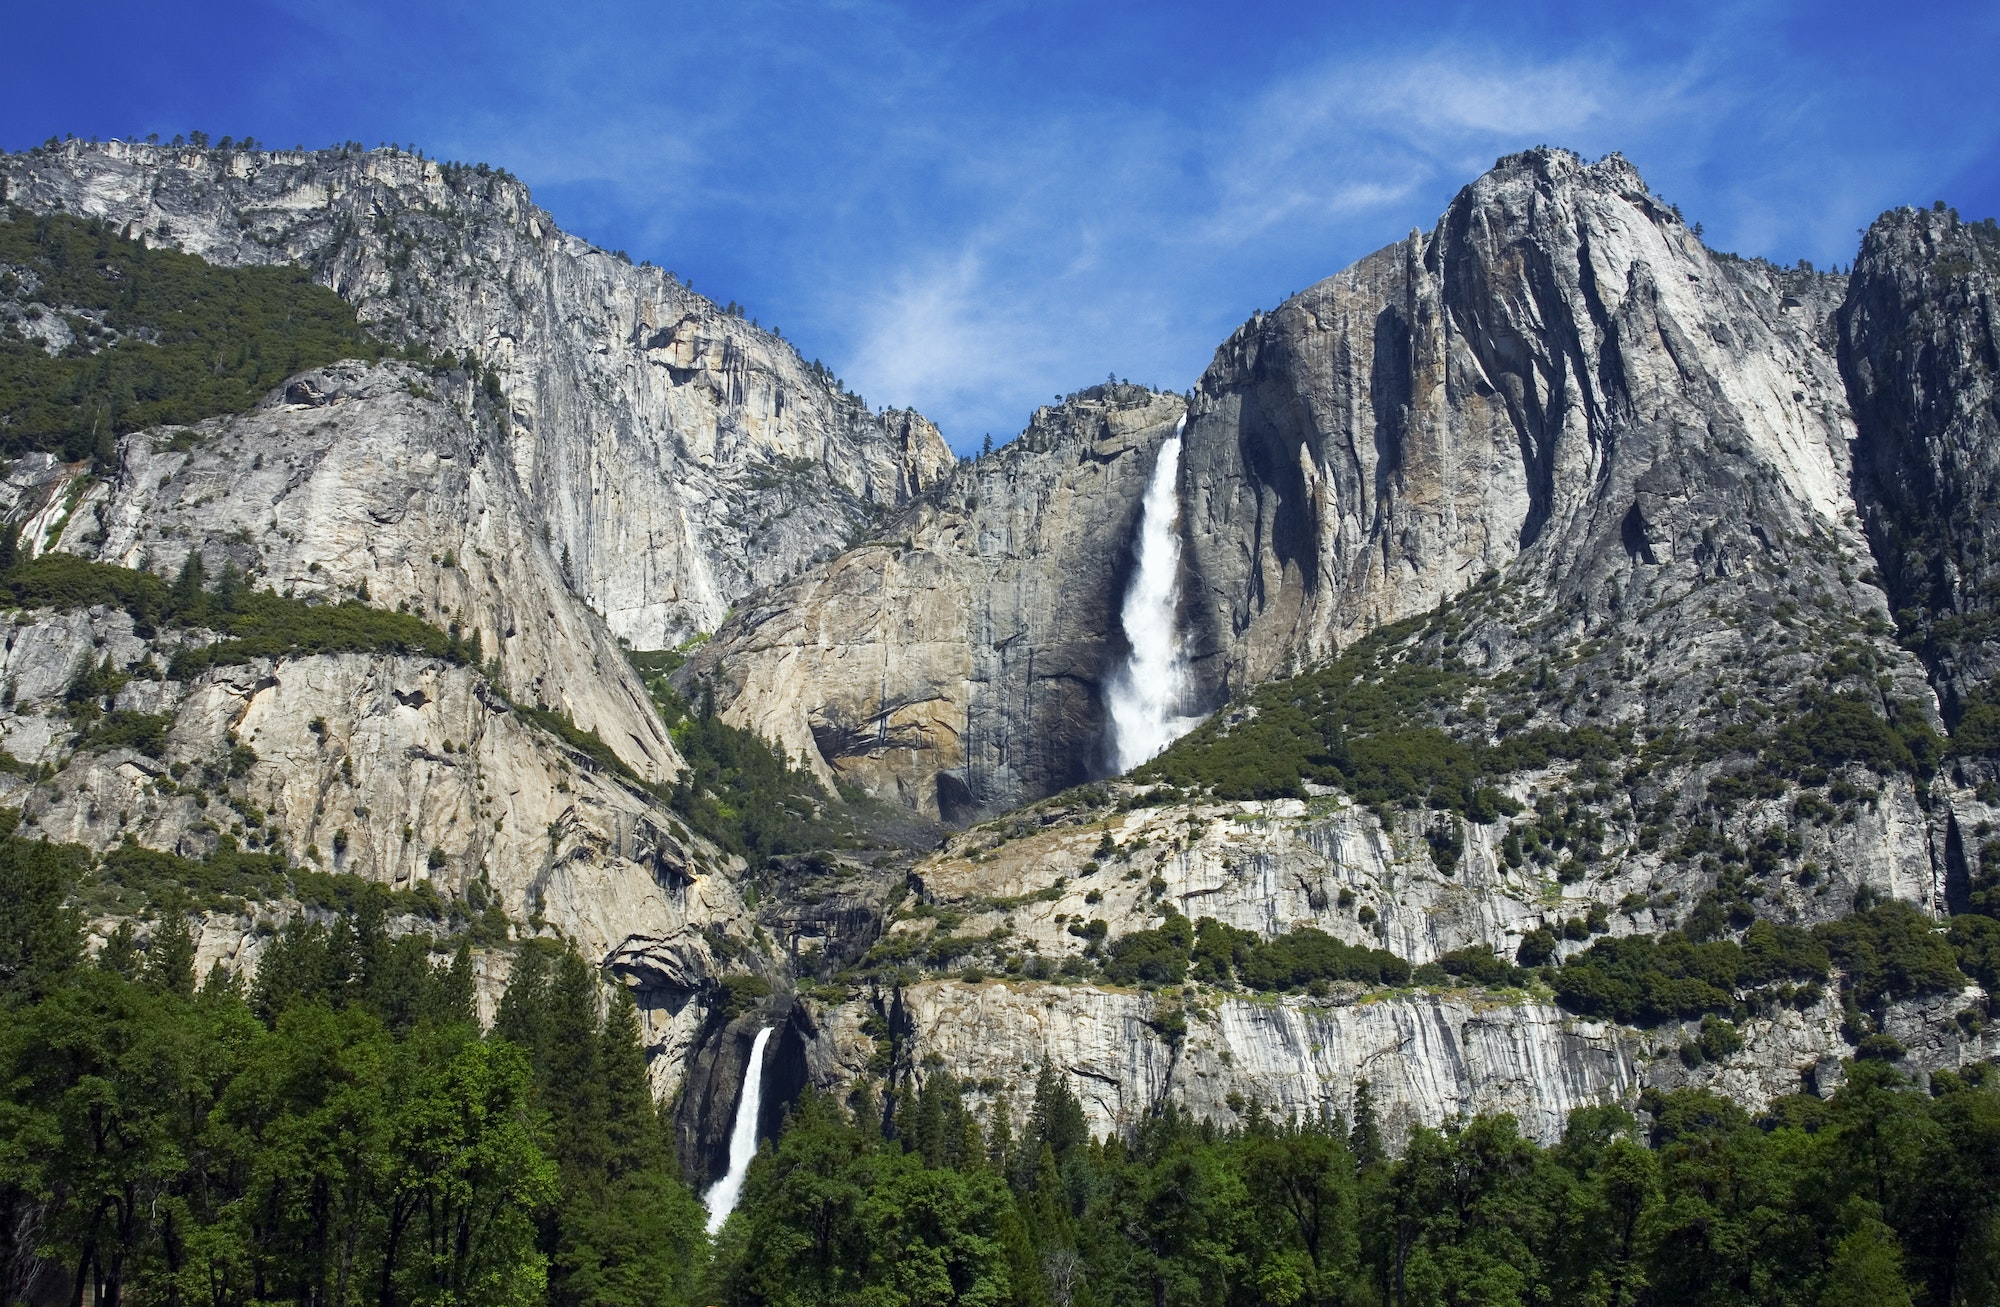 Yosemite National Park is revered as the birthplace of rock climbing as a sport.